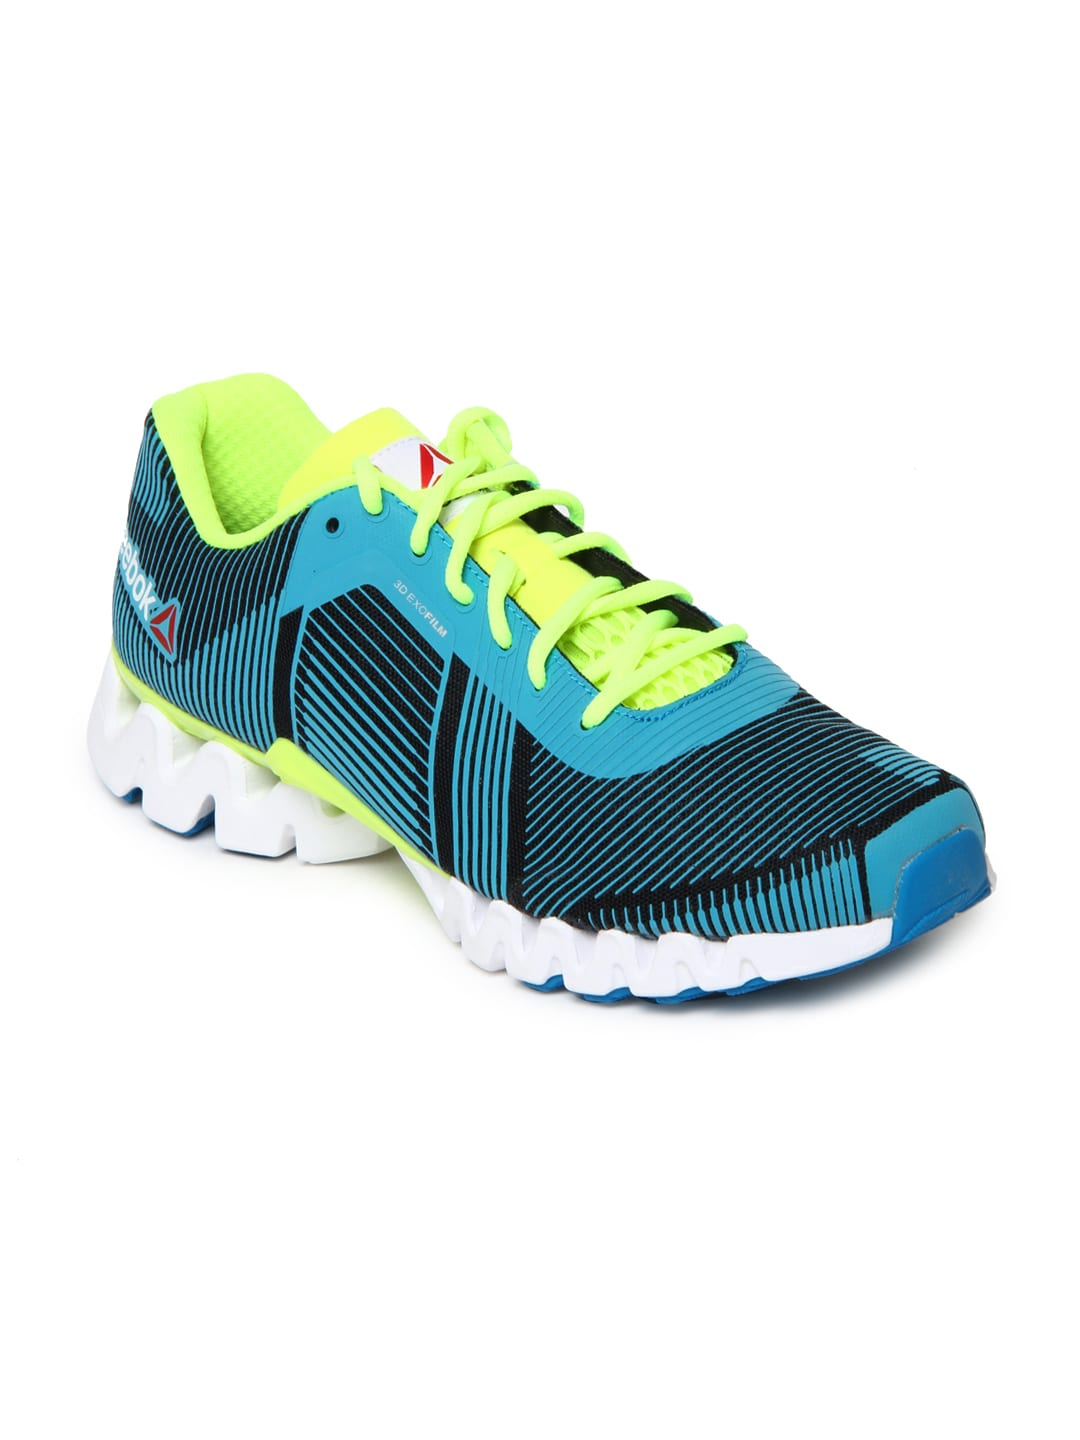 info for 3e1ce 7b188 Reebok v60485 Men Teal Blue And Black Zigtech 3 0 Energy Sports Shoes-  Price in India